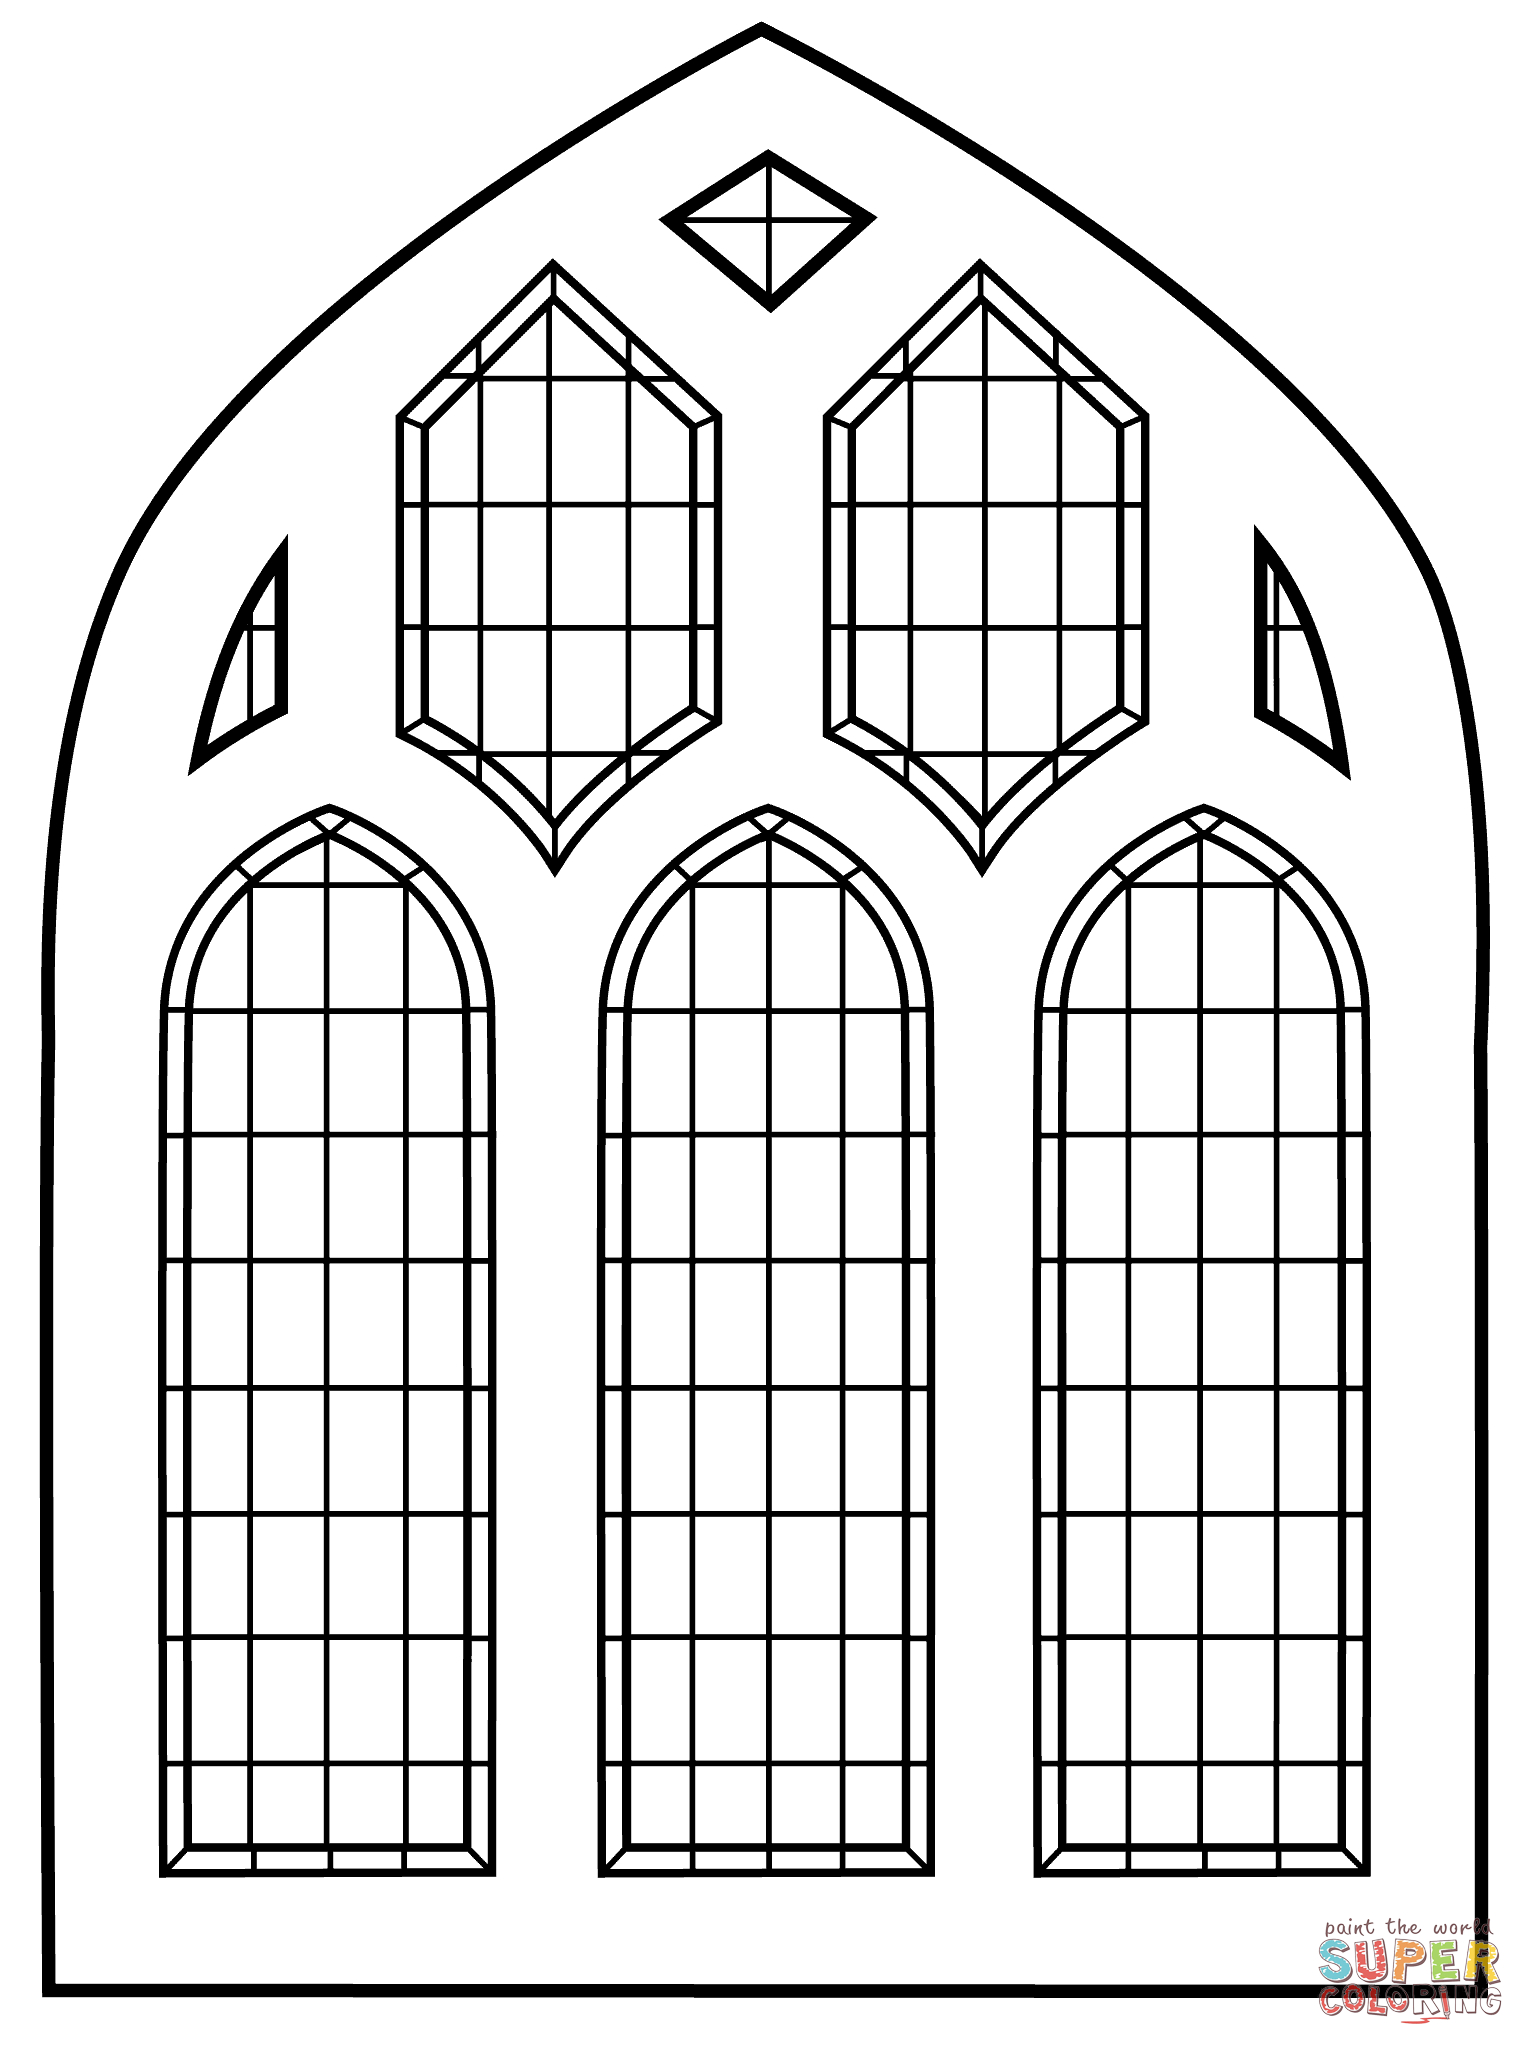 Stained Glass Coloring Pages | Free Coloring Pages - Free Printable Religious Stained Glass Patterns